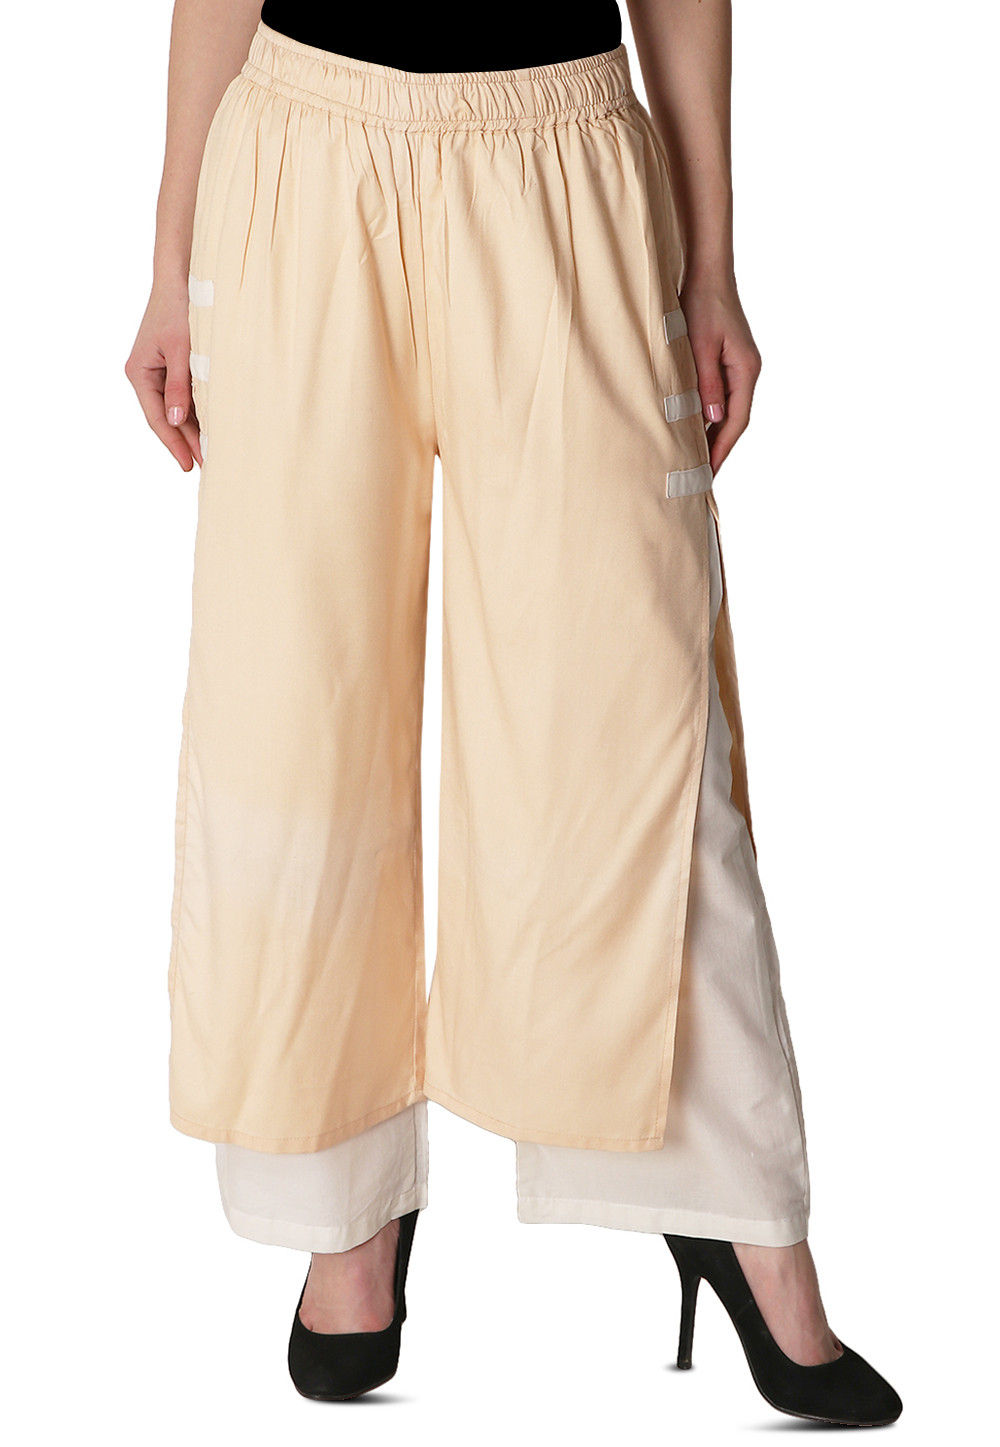 Solid Color Rayon Layered Pant in Beige